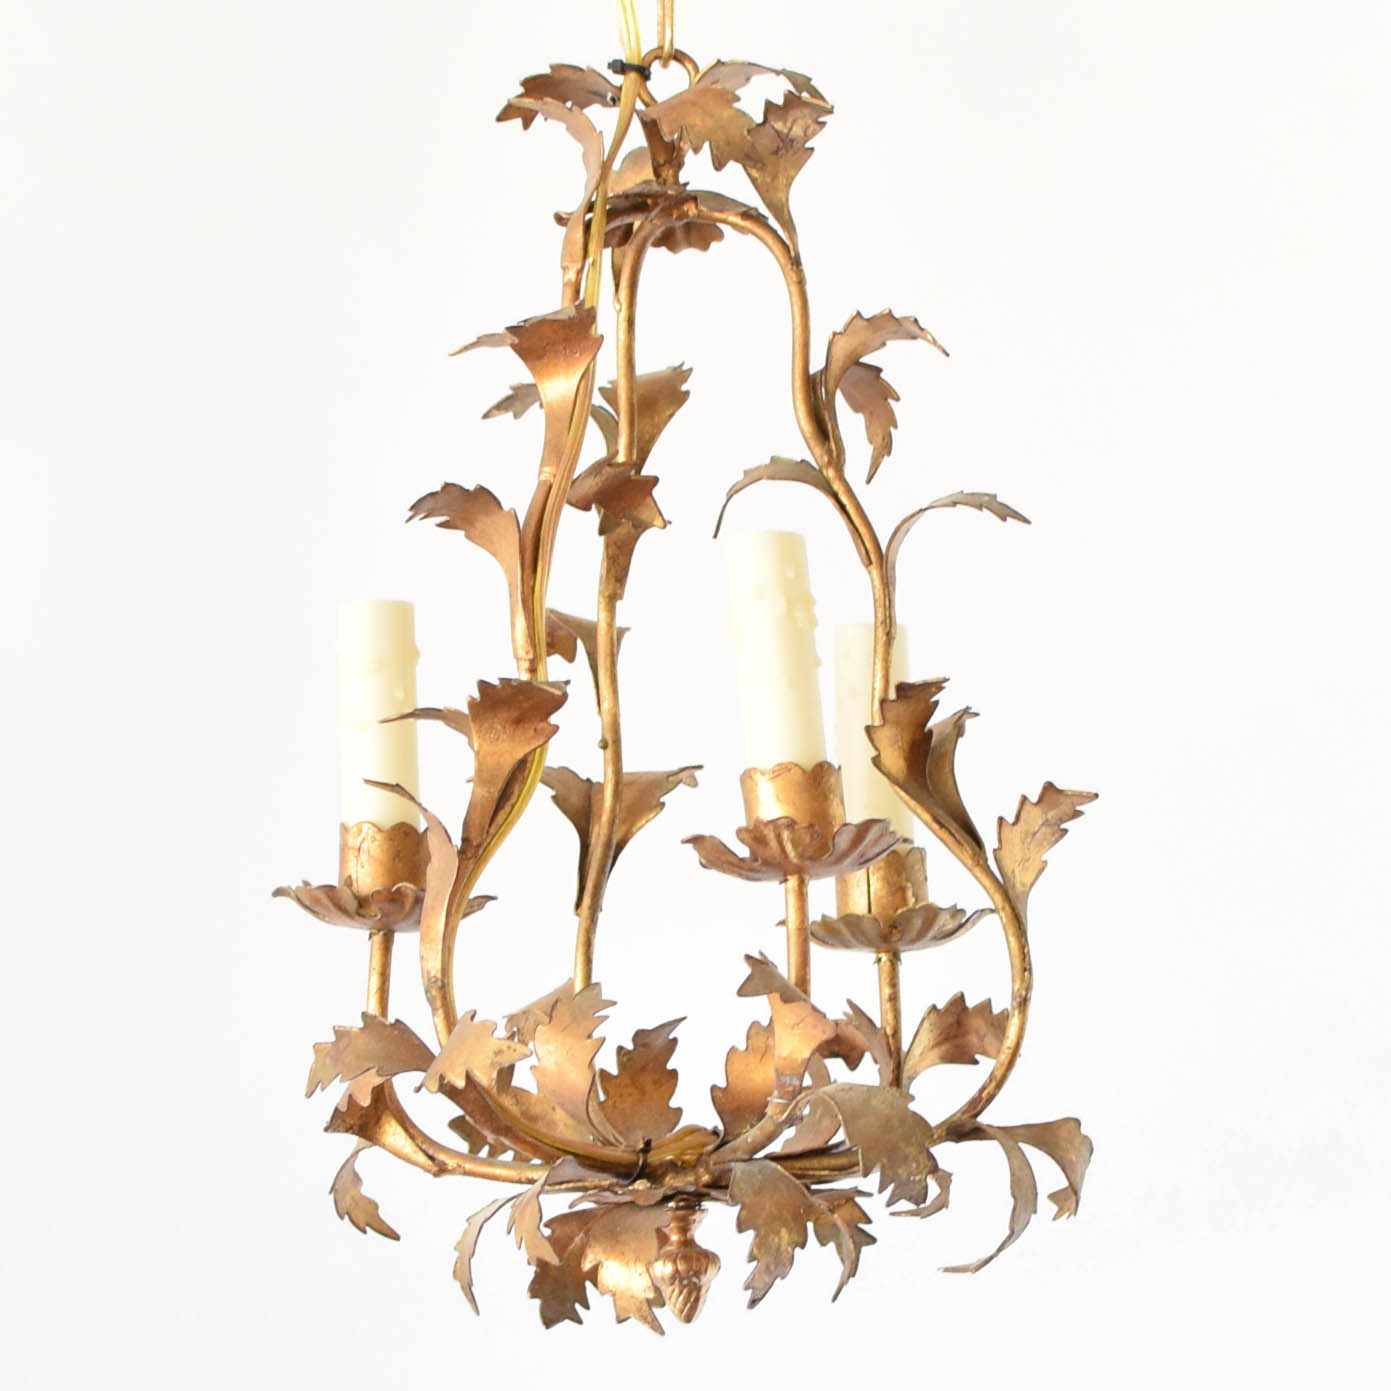 gold leaf chandelier silver italian gold leaf chandelier old vintage antique belgian french spanish spain france belgium chandelier the big